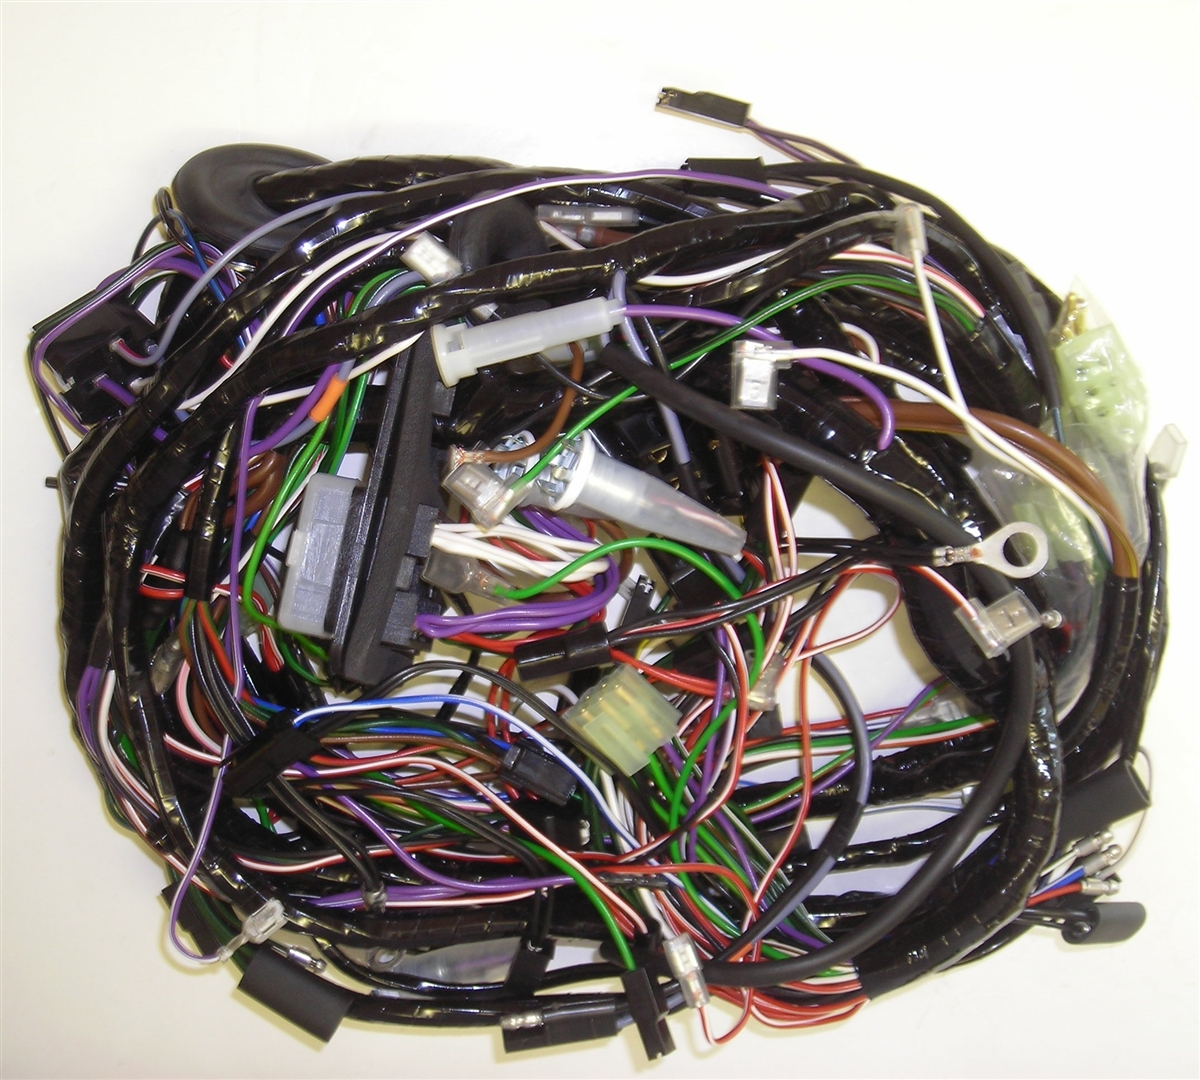 triumph spitfire1500 main wiring harness rh britishwiring com triumph spitfire wiring harness for sale triumph spitfire wiring harness for sale